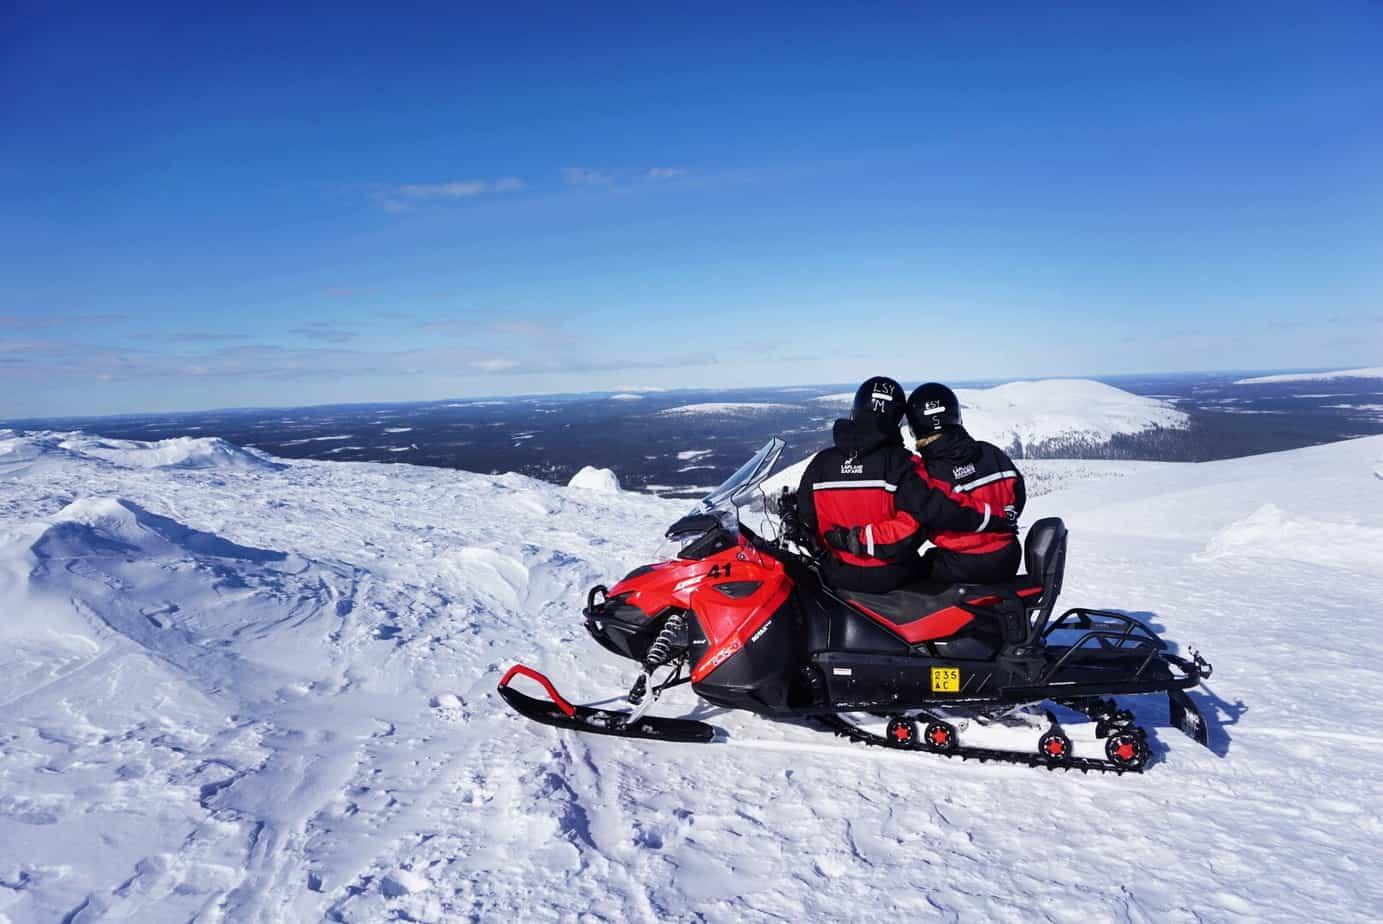 Yllas ski resort in Lapland is full of fun winter activities like snowmobiling!